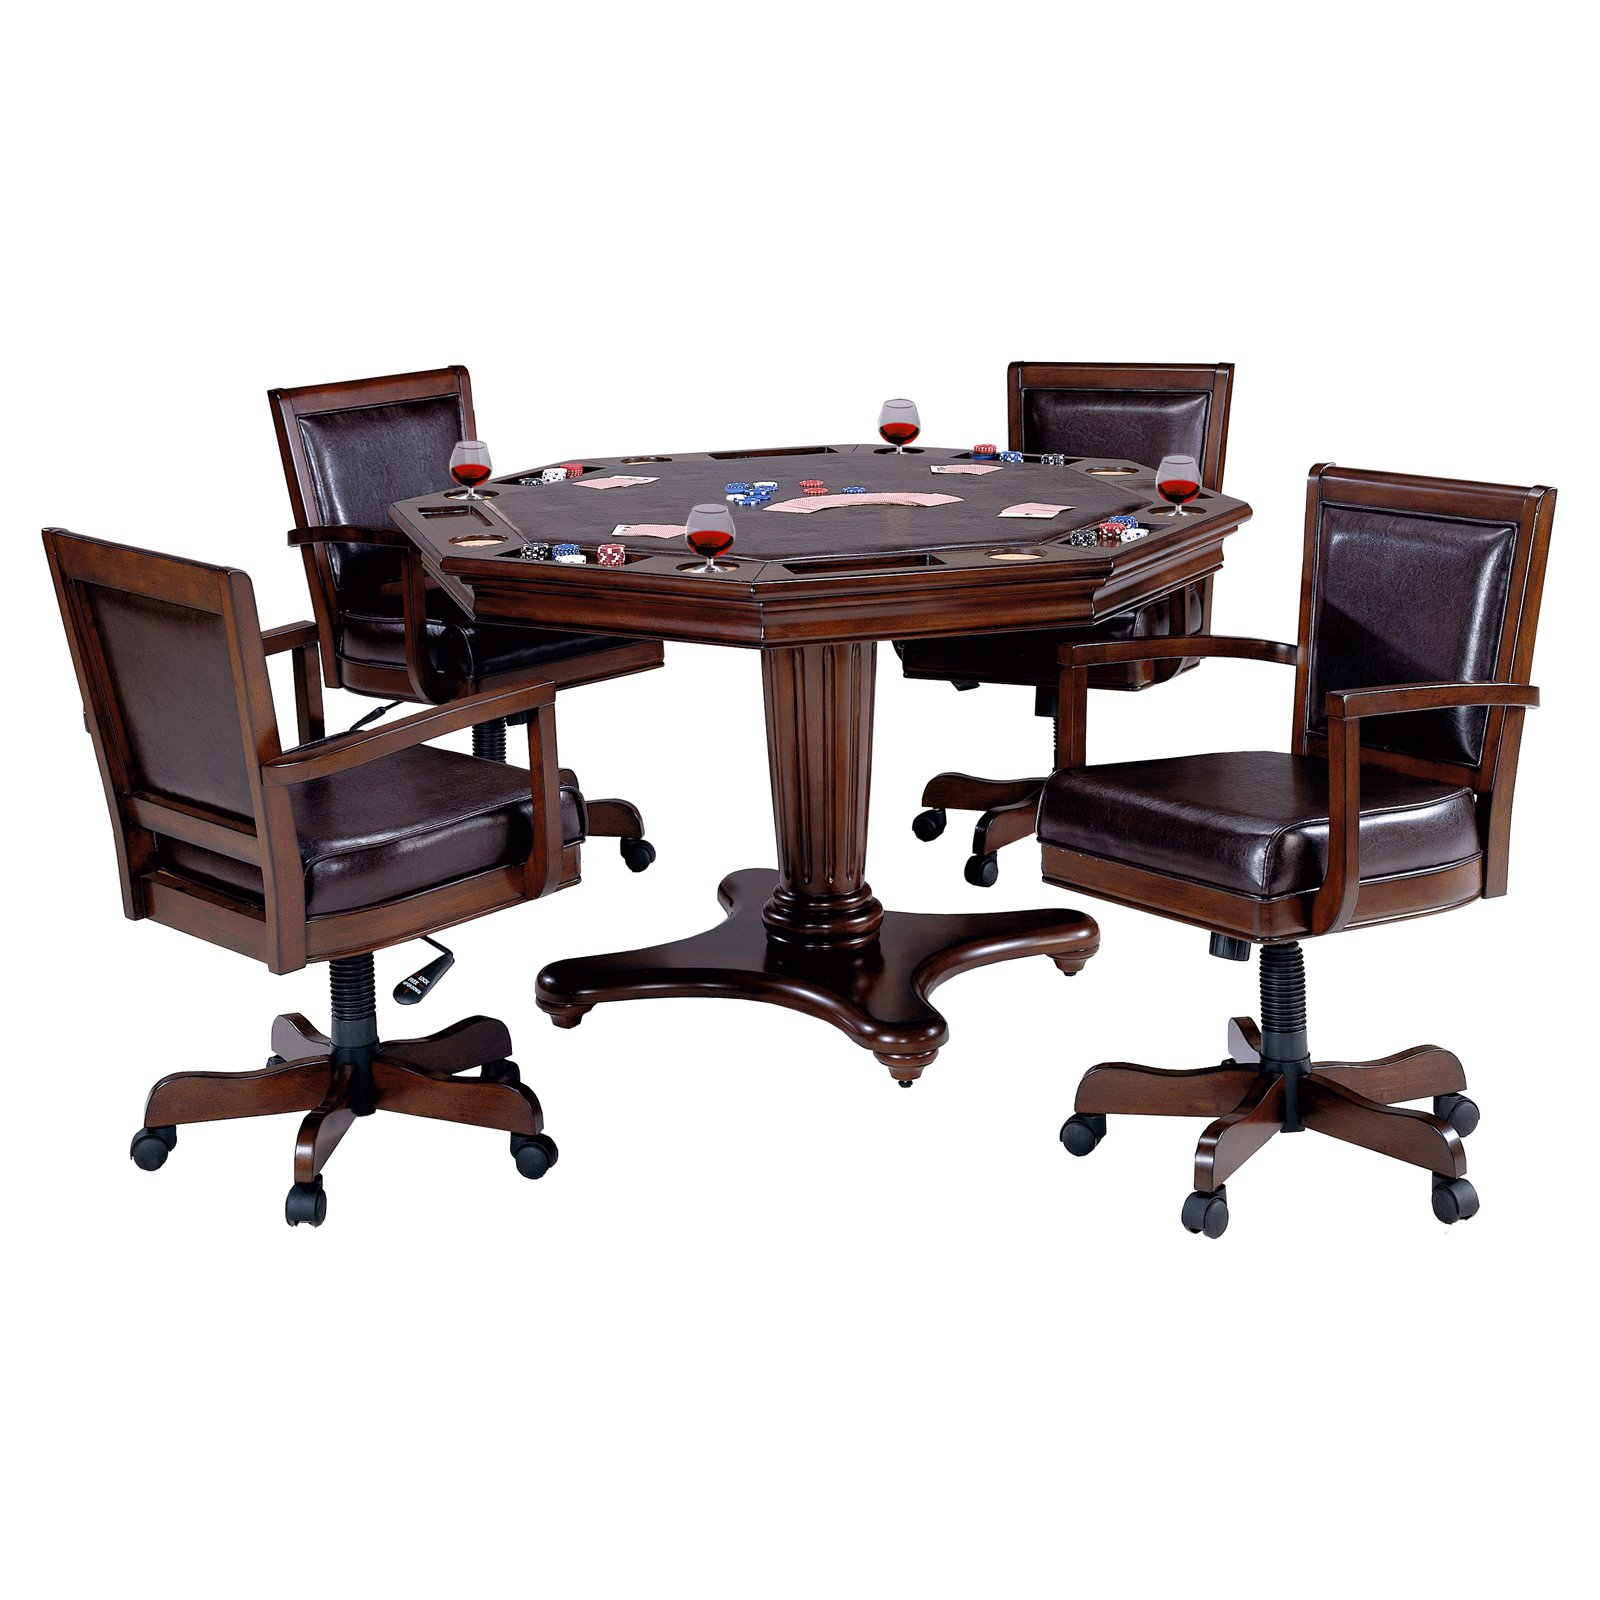 Hillsdale Ambassador 5 Piece Game Table Set by Hillsdale Furniture